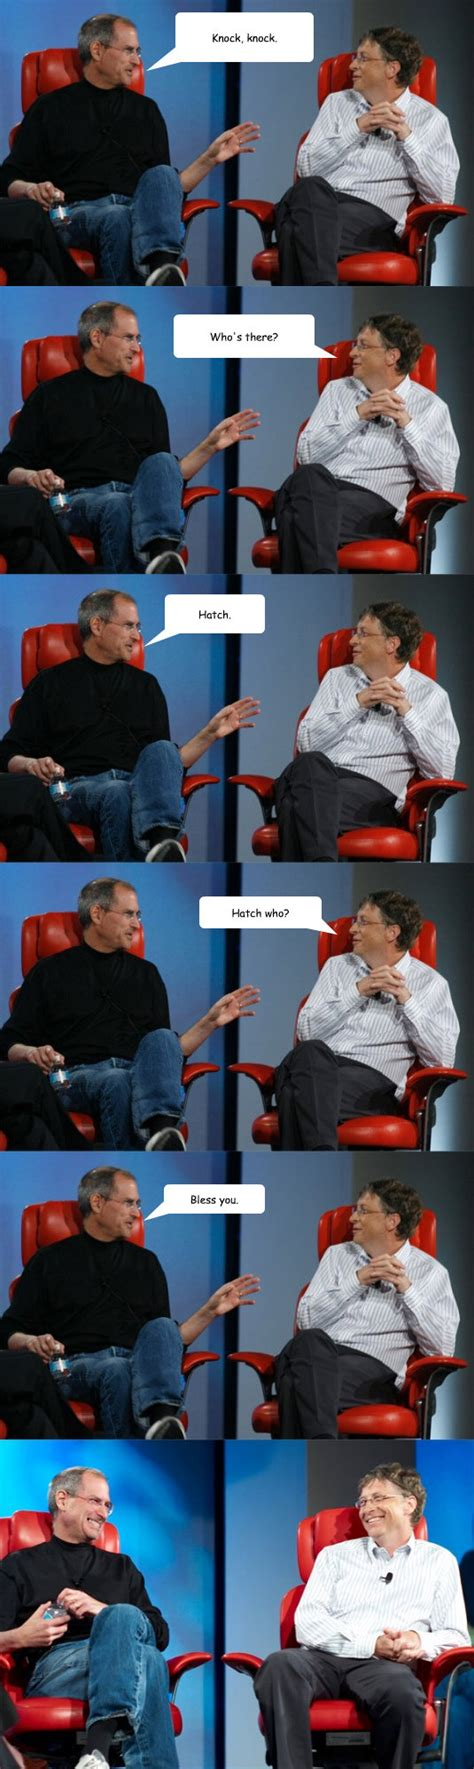 Bill Gates Steve Jobs Meme - steve jobs and bill gates meme weknowmemes